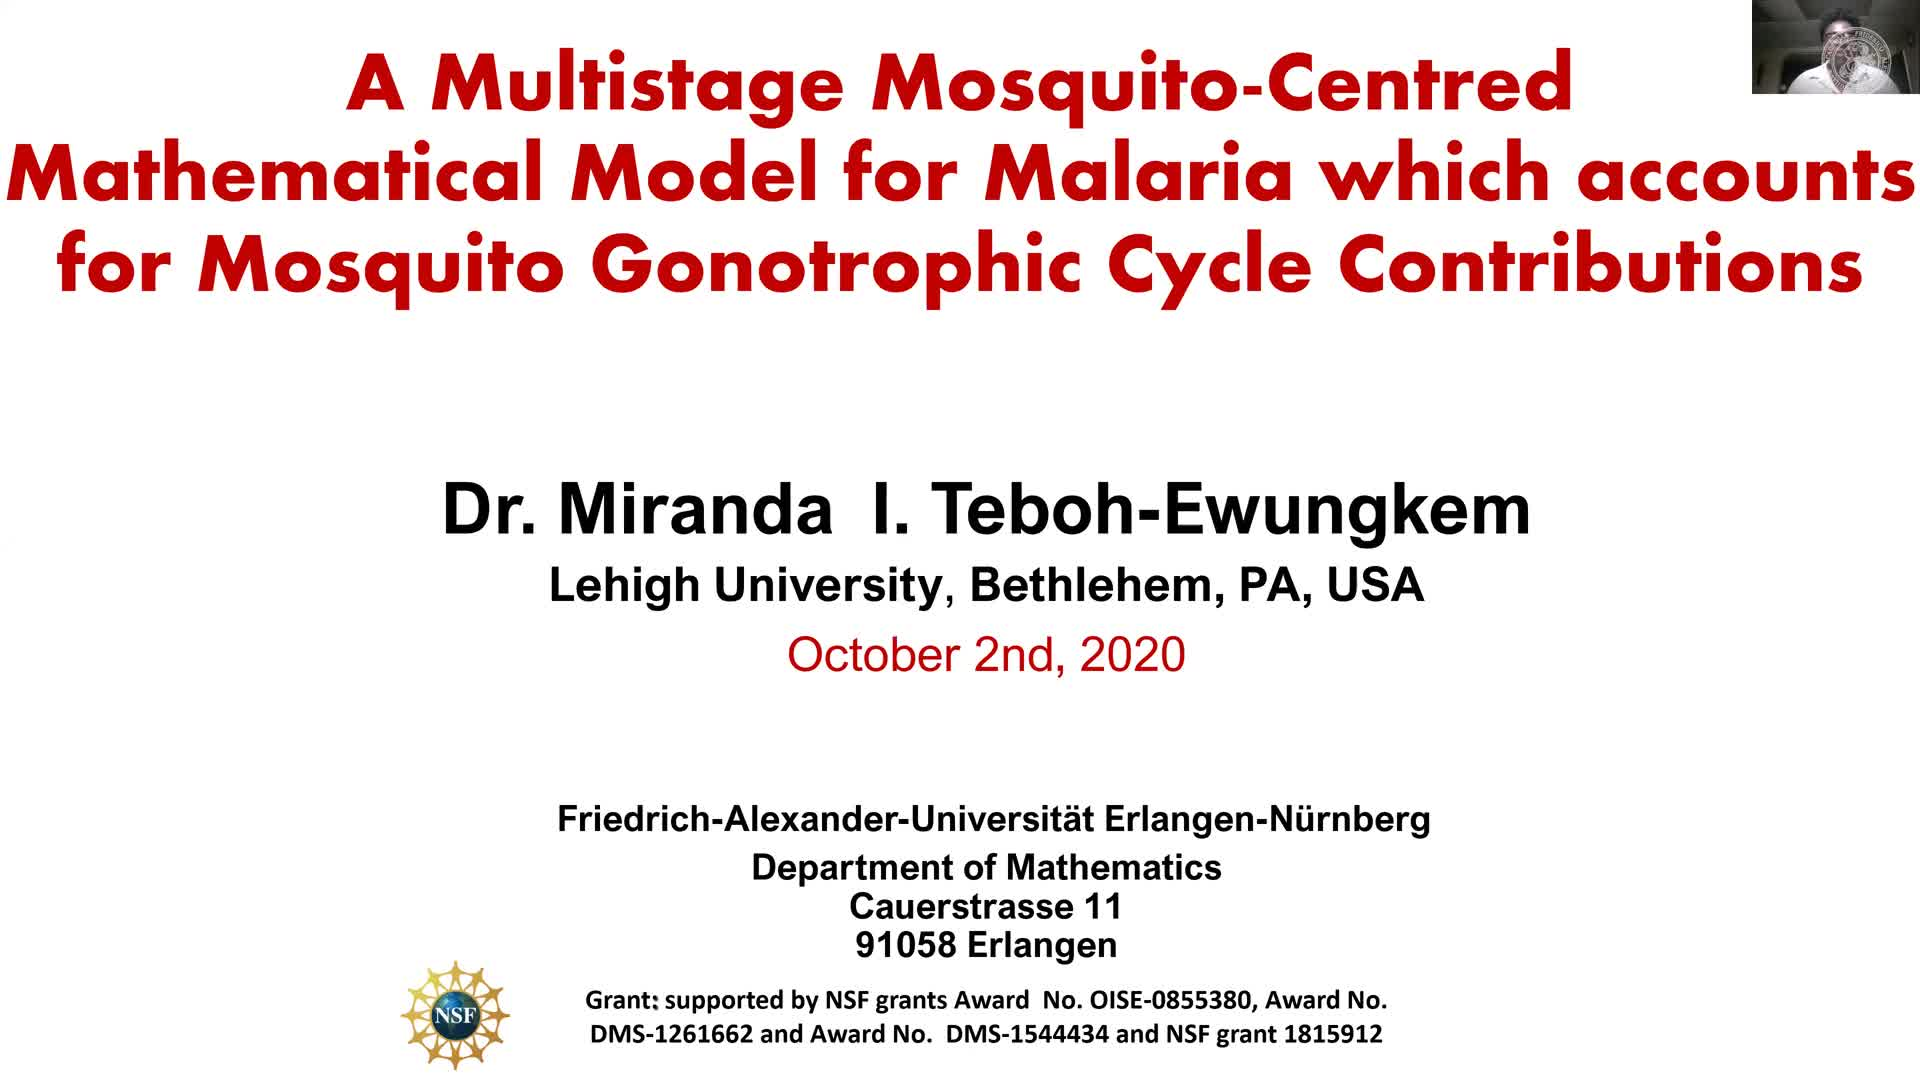 A Multistage Mosquito-Centred-Mathematical Model for Malaria which accounts for Mosquito Gonotrophic Cycle Contributions preview image